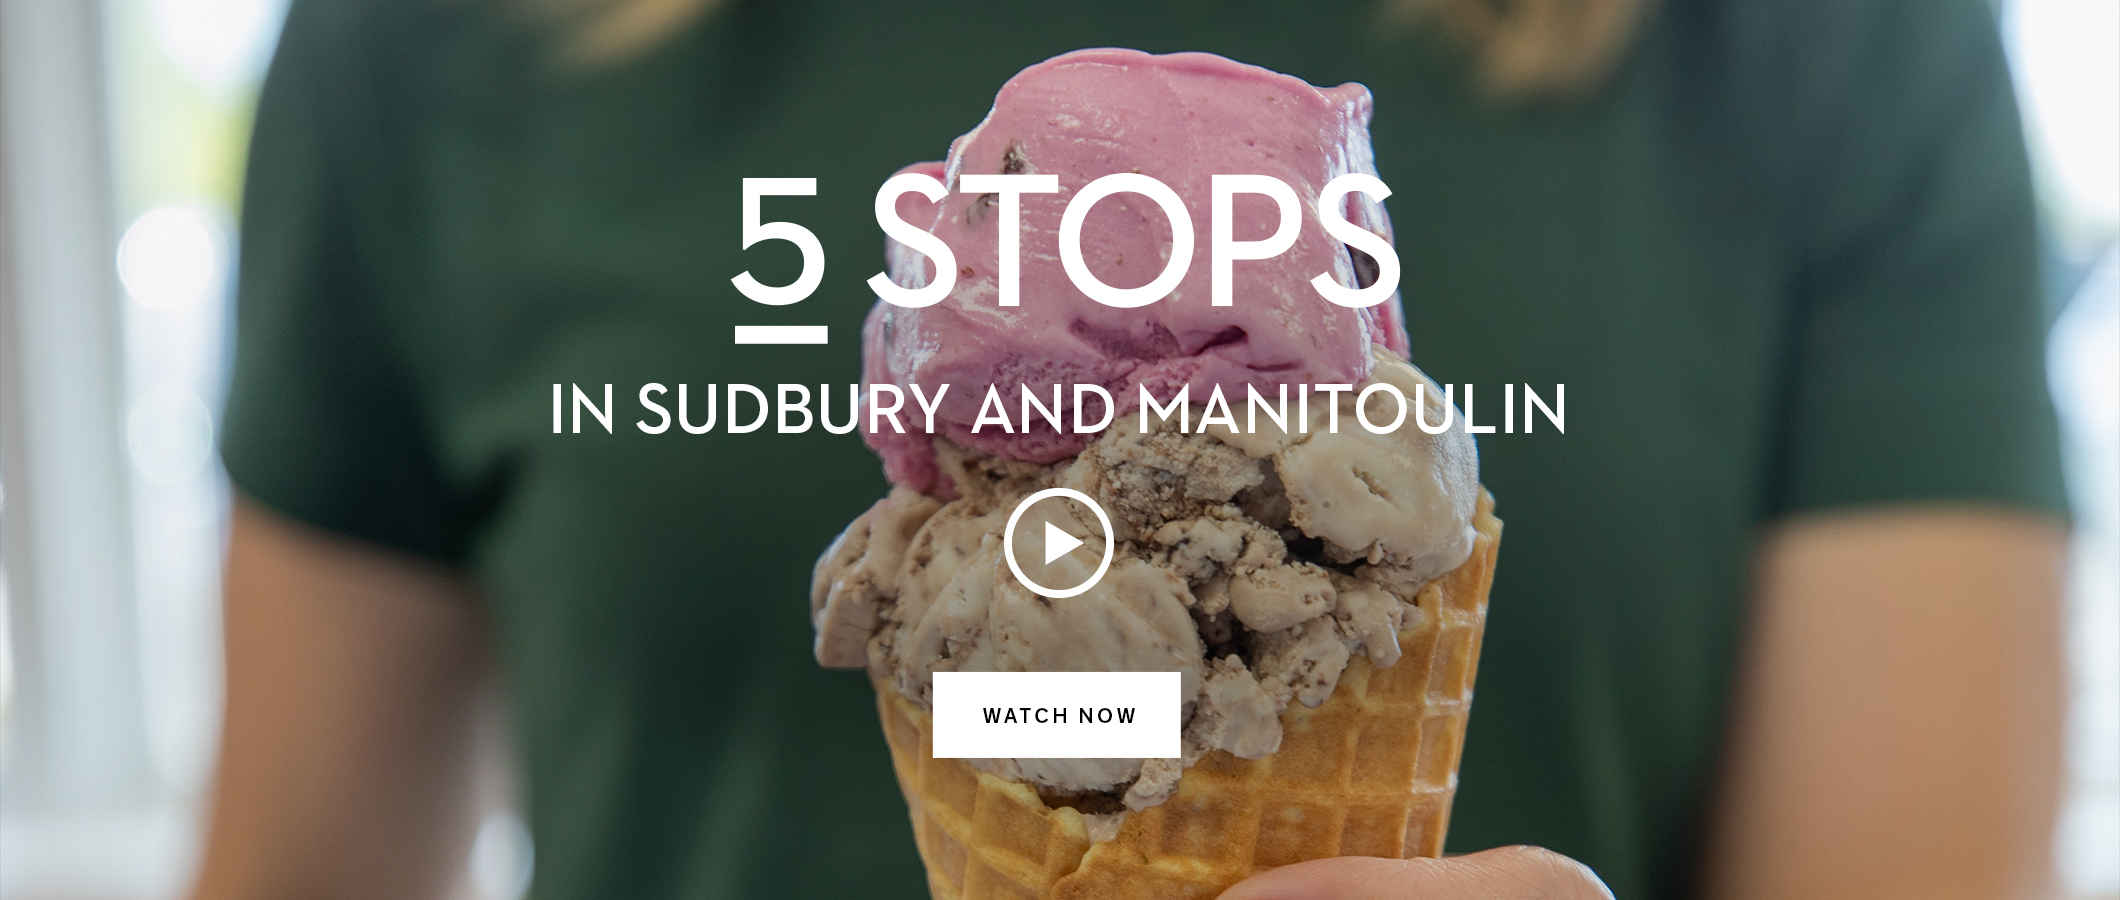 5 Stops - A Food & Drink Original Series. Uncover Ontario's Food & Drink Gems. Watch our new mini-series.